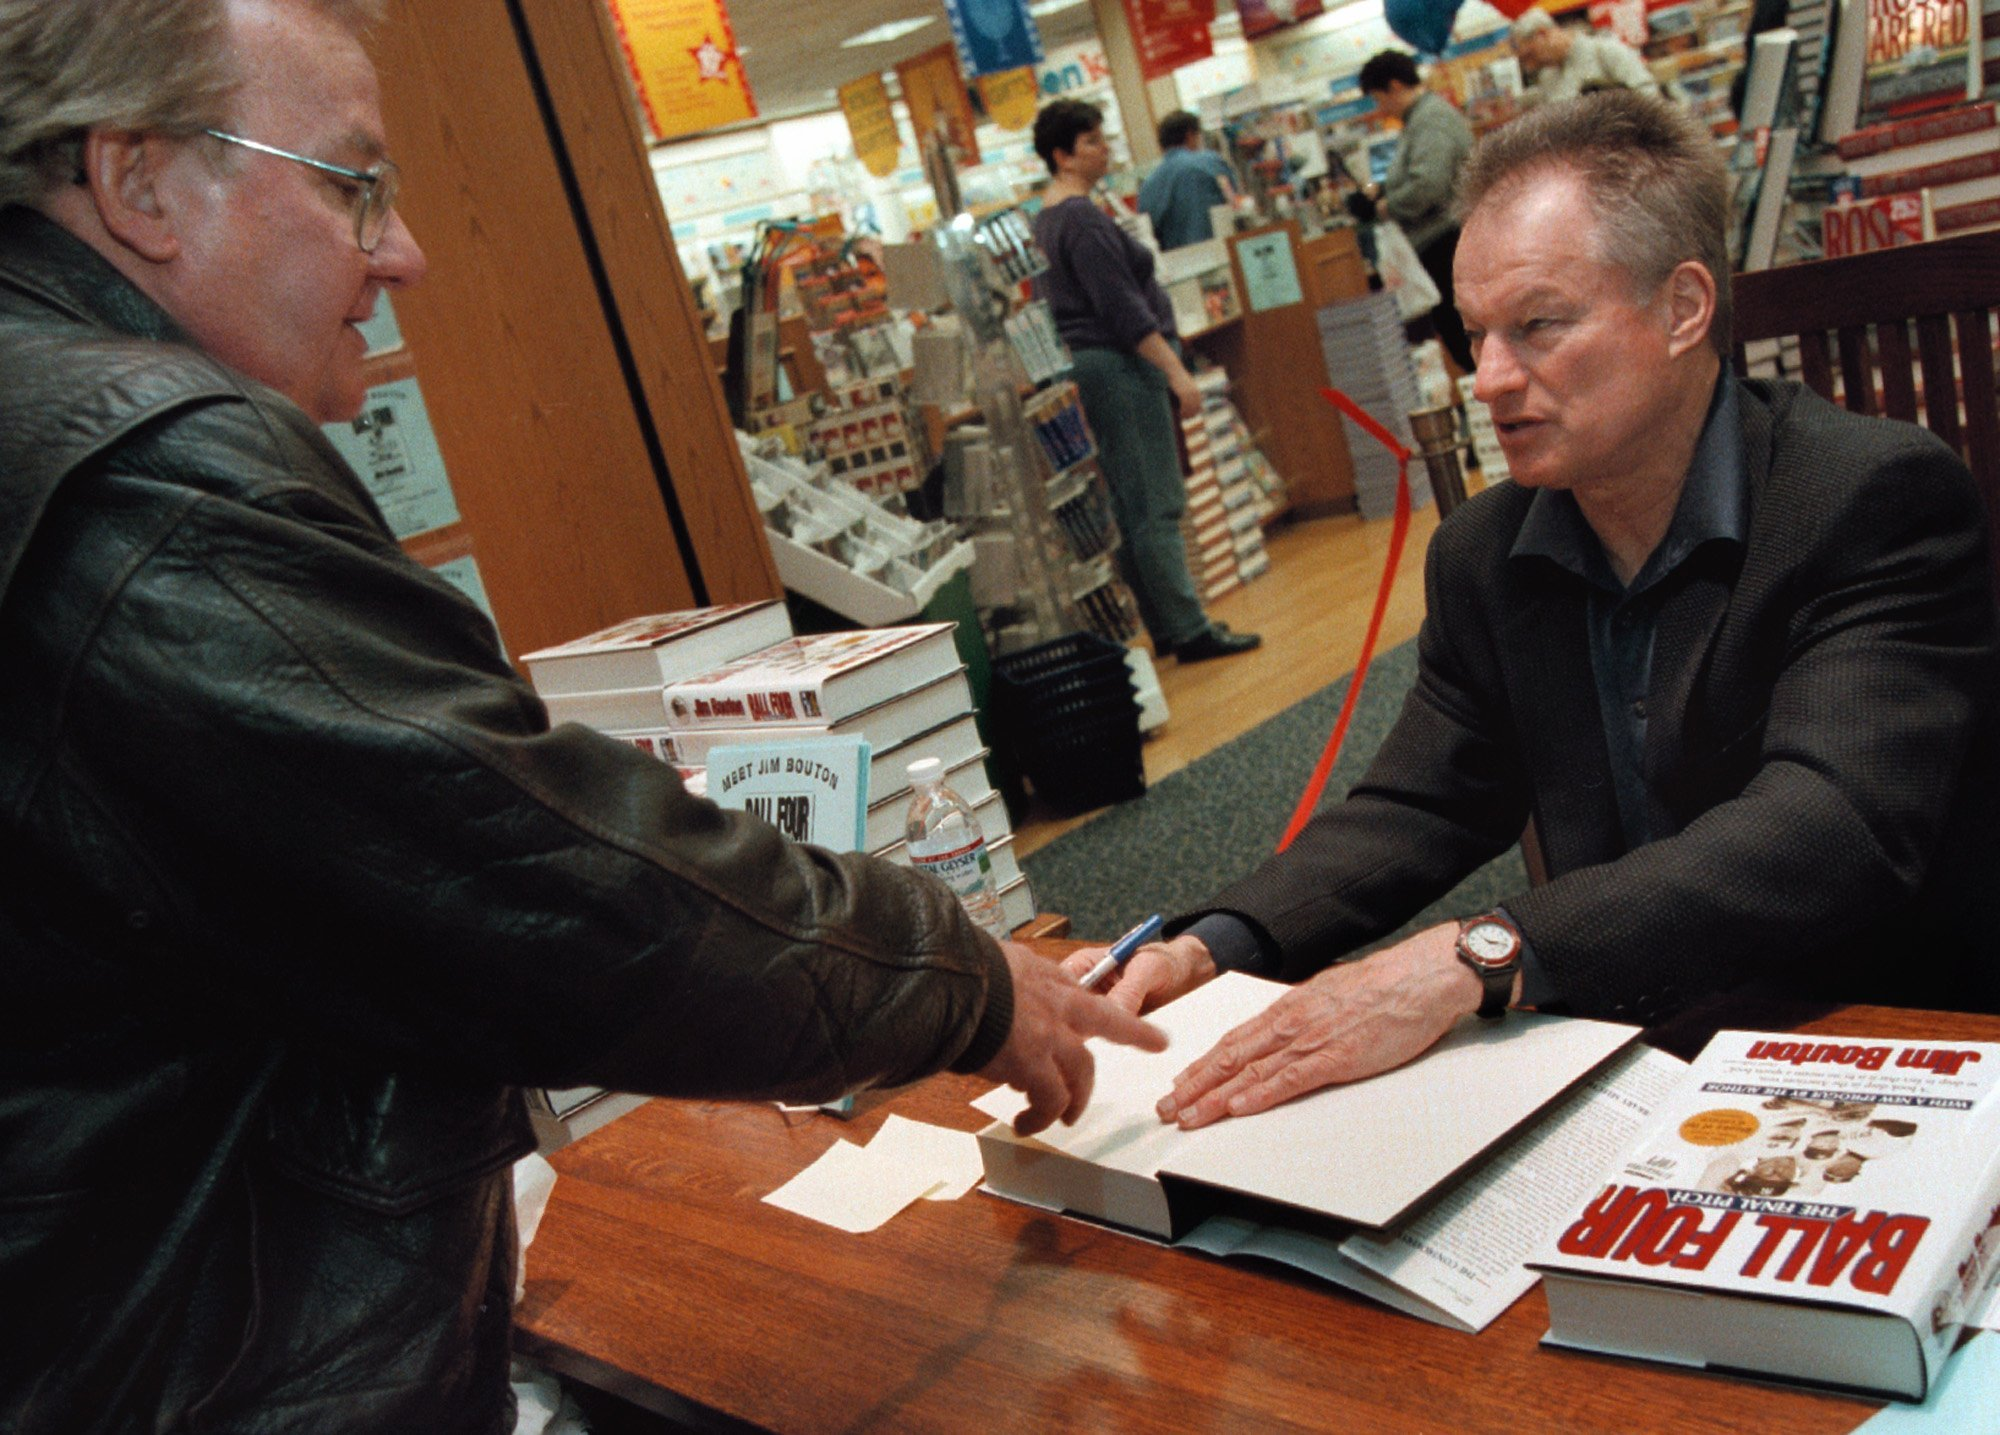 """Former New York Yankees pitcher Jim Bouton signs copies of his new book, """"Ball Four: The Final Pitch"""" at a Waldenbooks store in Schaumburg. Photo: Getty Images/GlobalImagesUkraine"""